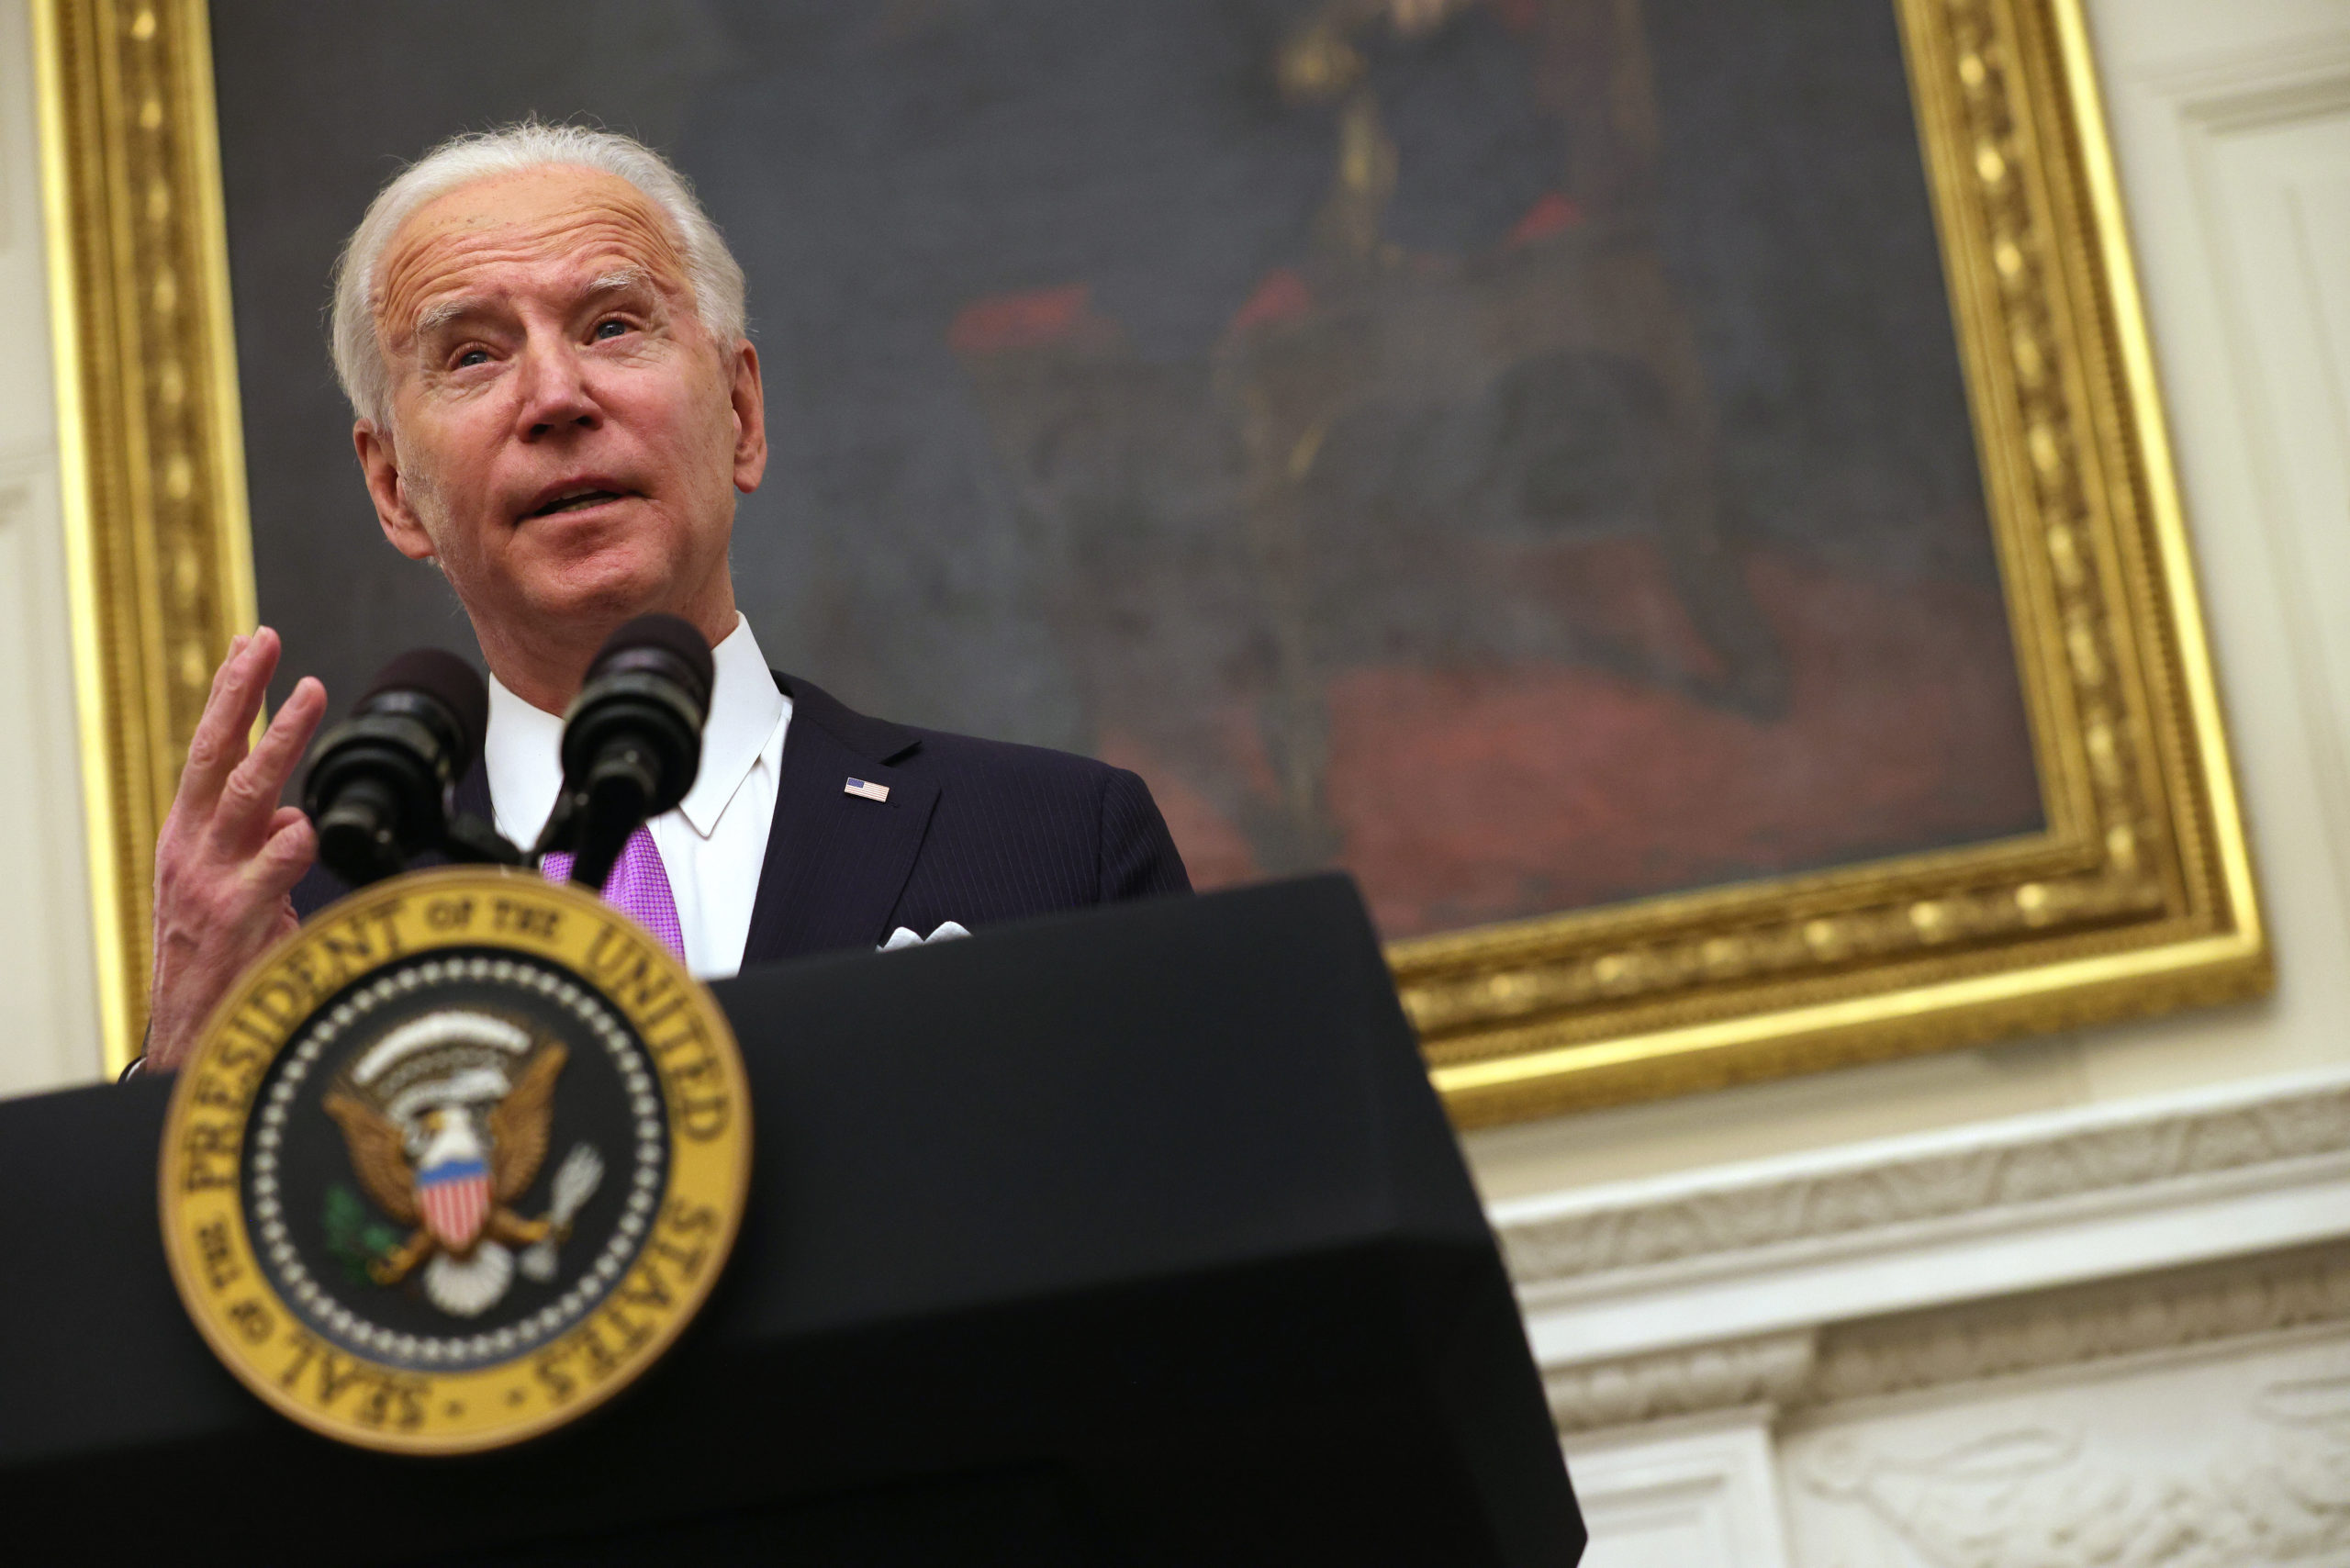 WASHINGTON, DC - JANUARY 21: U.S. President Joe Biden speaks during an event in the State Dining Room of the White House January 21, 2021 in Washington, DC. President Biden delivered remarks on his administration's COVID-19 response, and signed executive orders and other presidential actions. (Photo by Alex Wong/Getty Images)